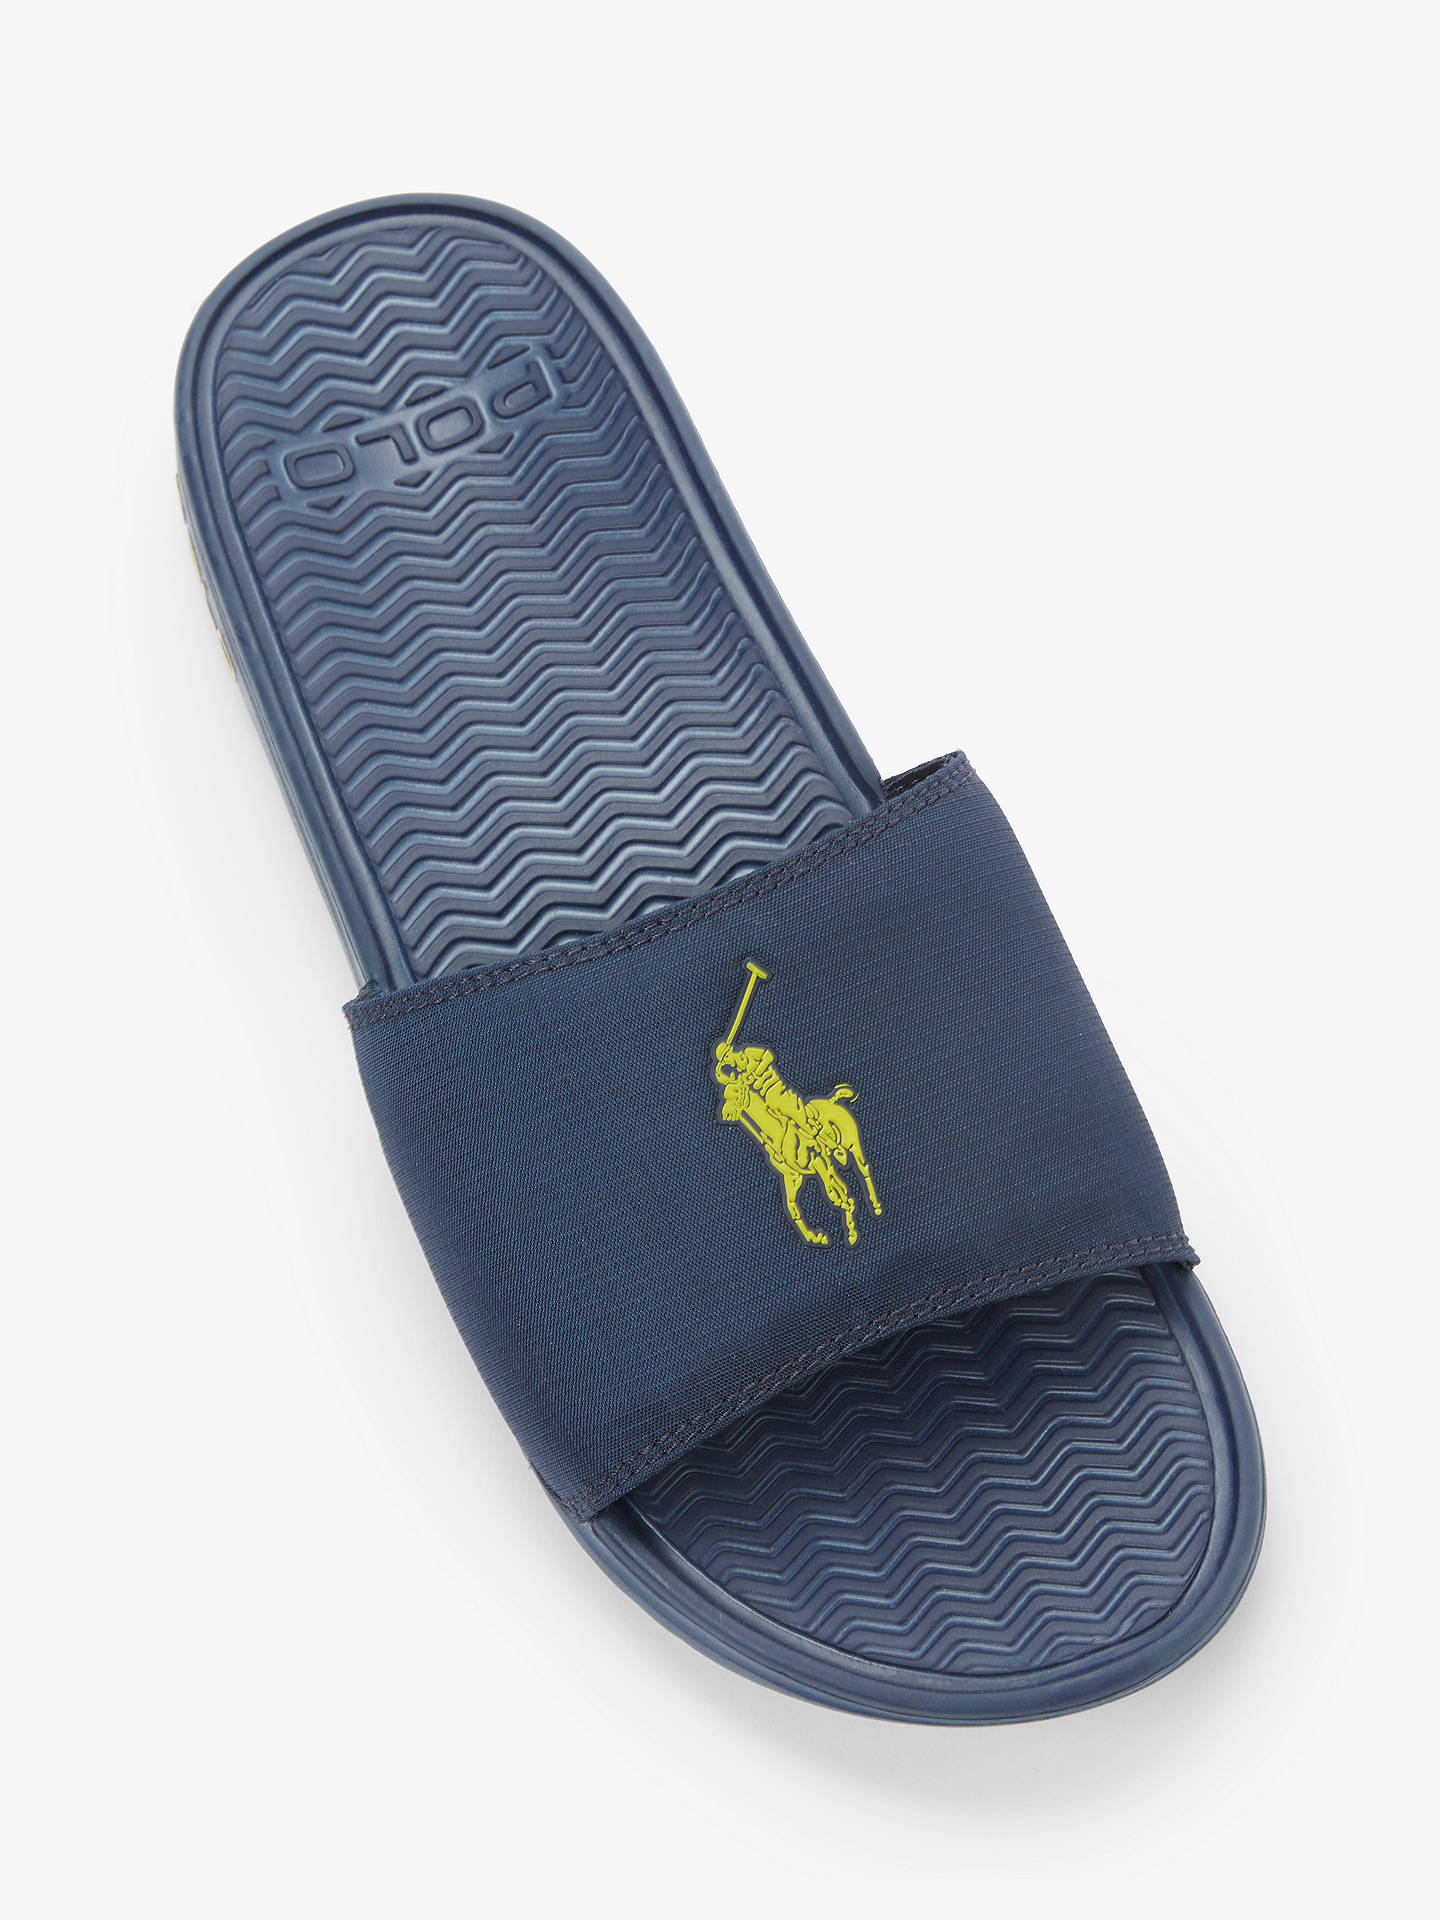 0c041b55091 Polo Ralph Lauren Pool Sliders at John Lewis   Partners